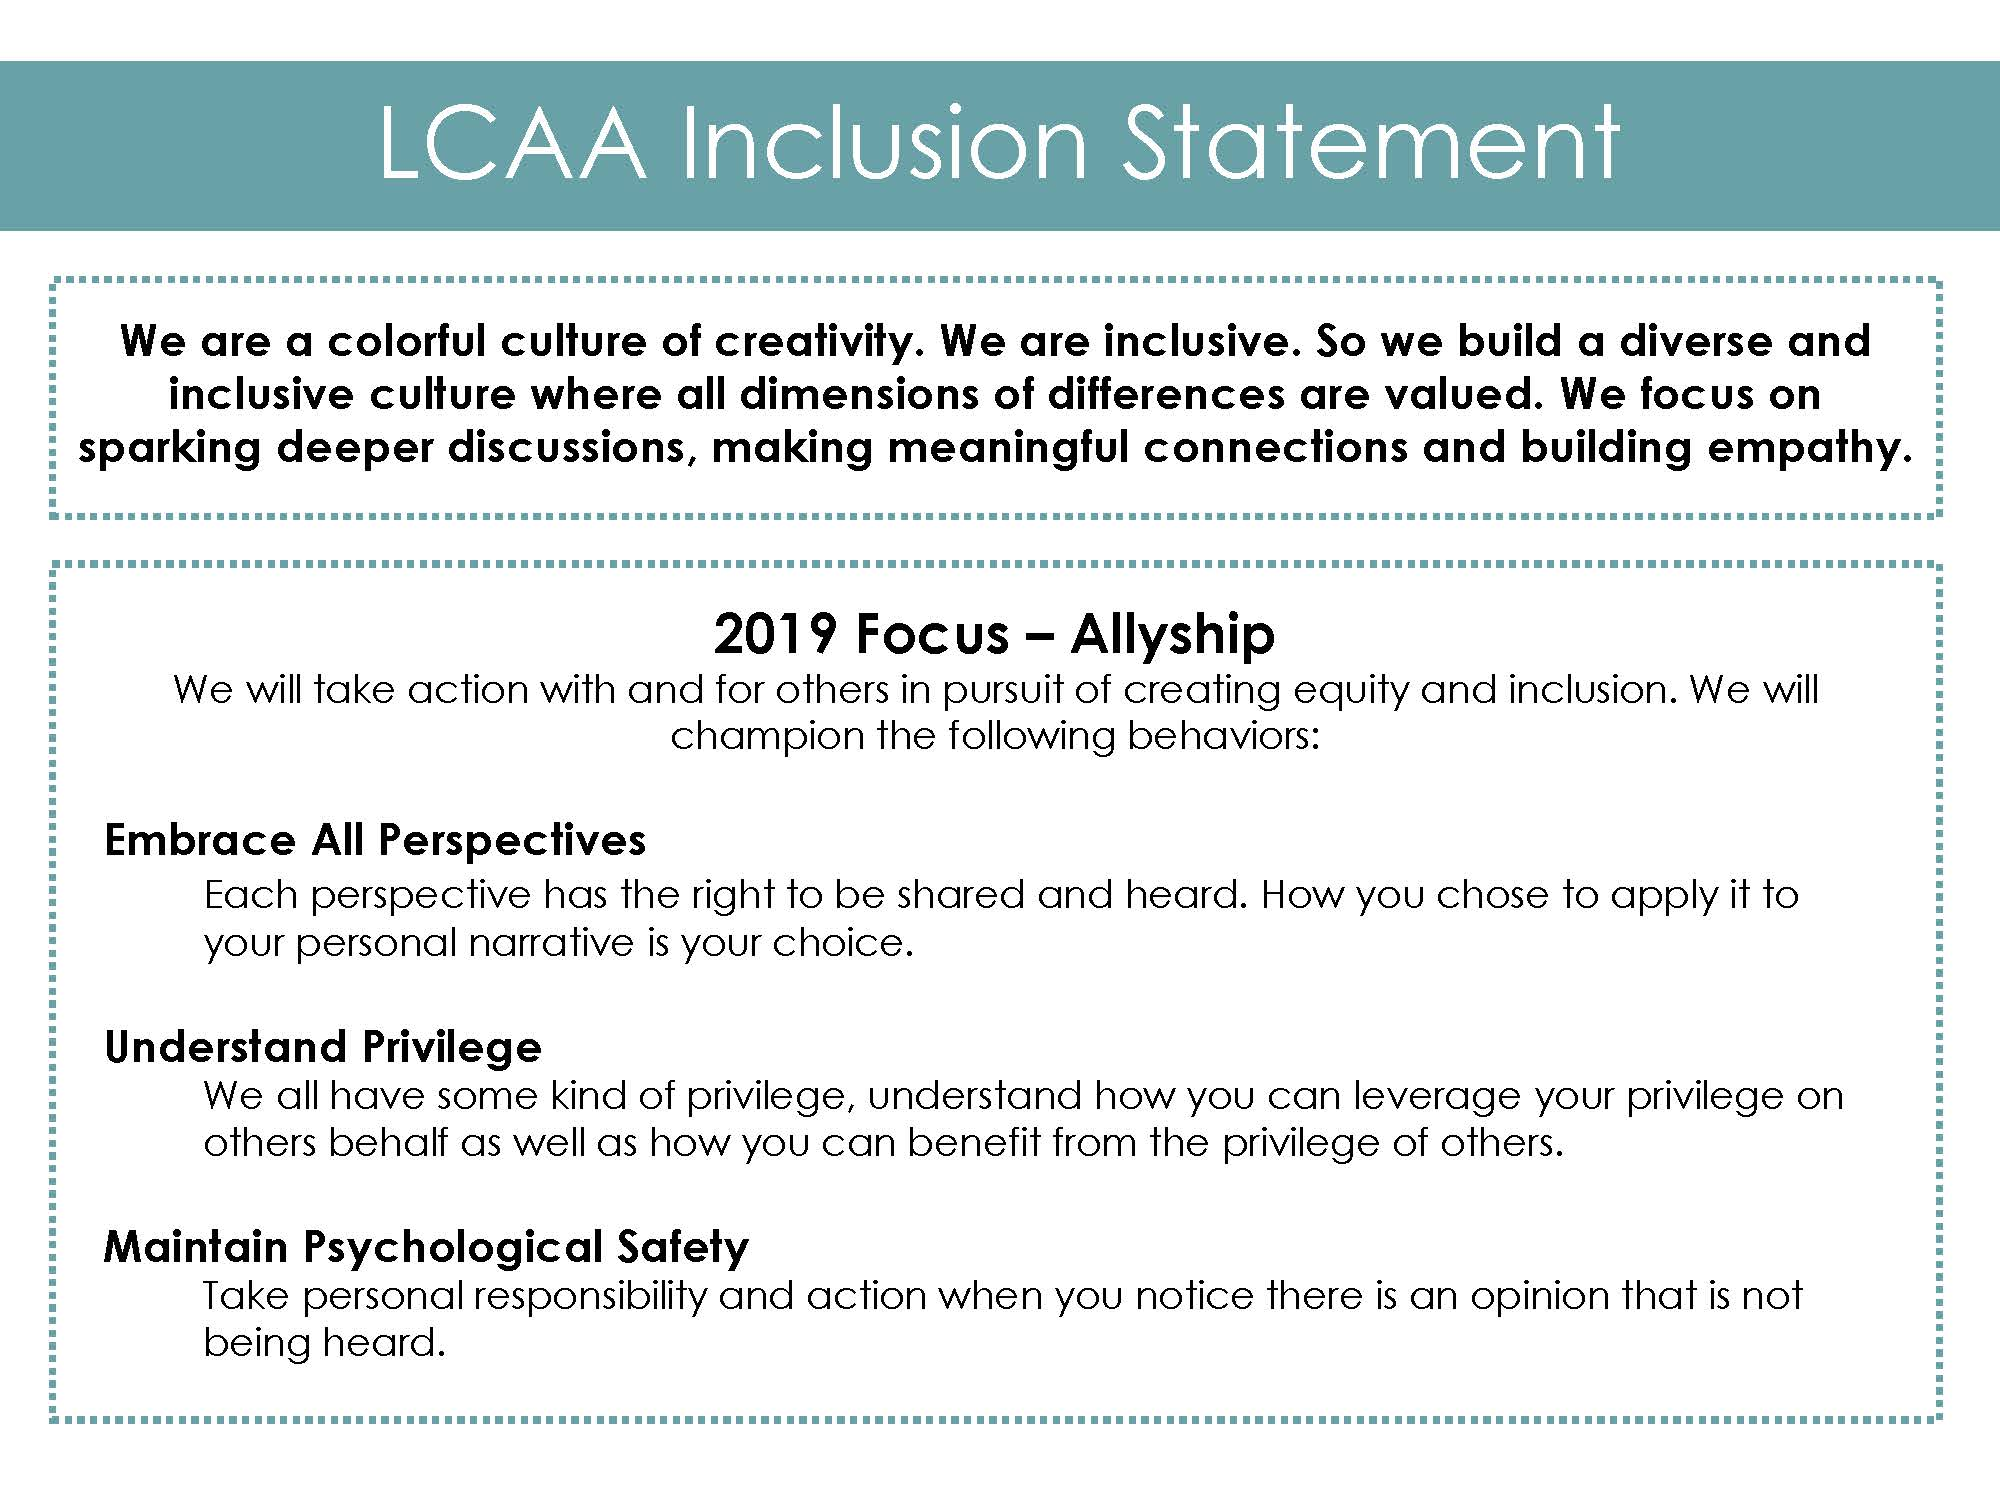 LCAA Inclusion Statement.jpg